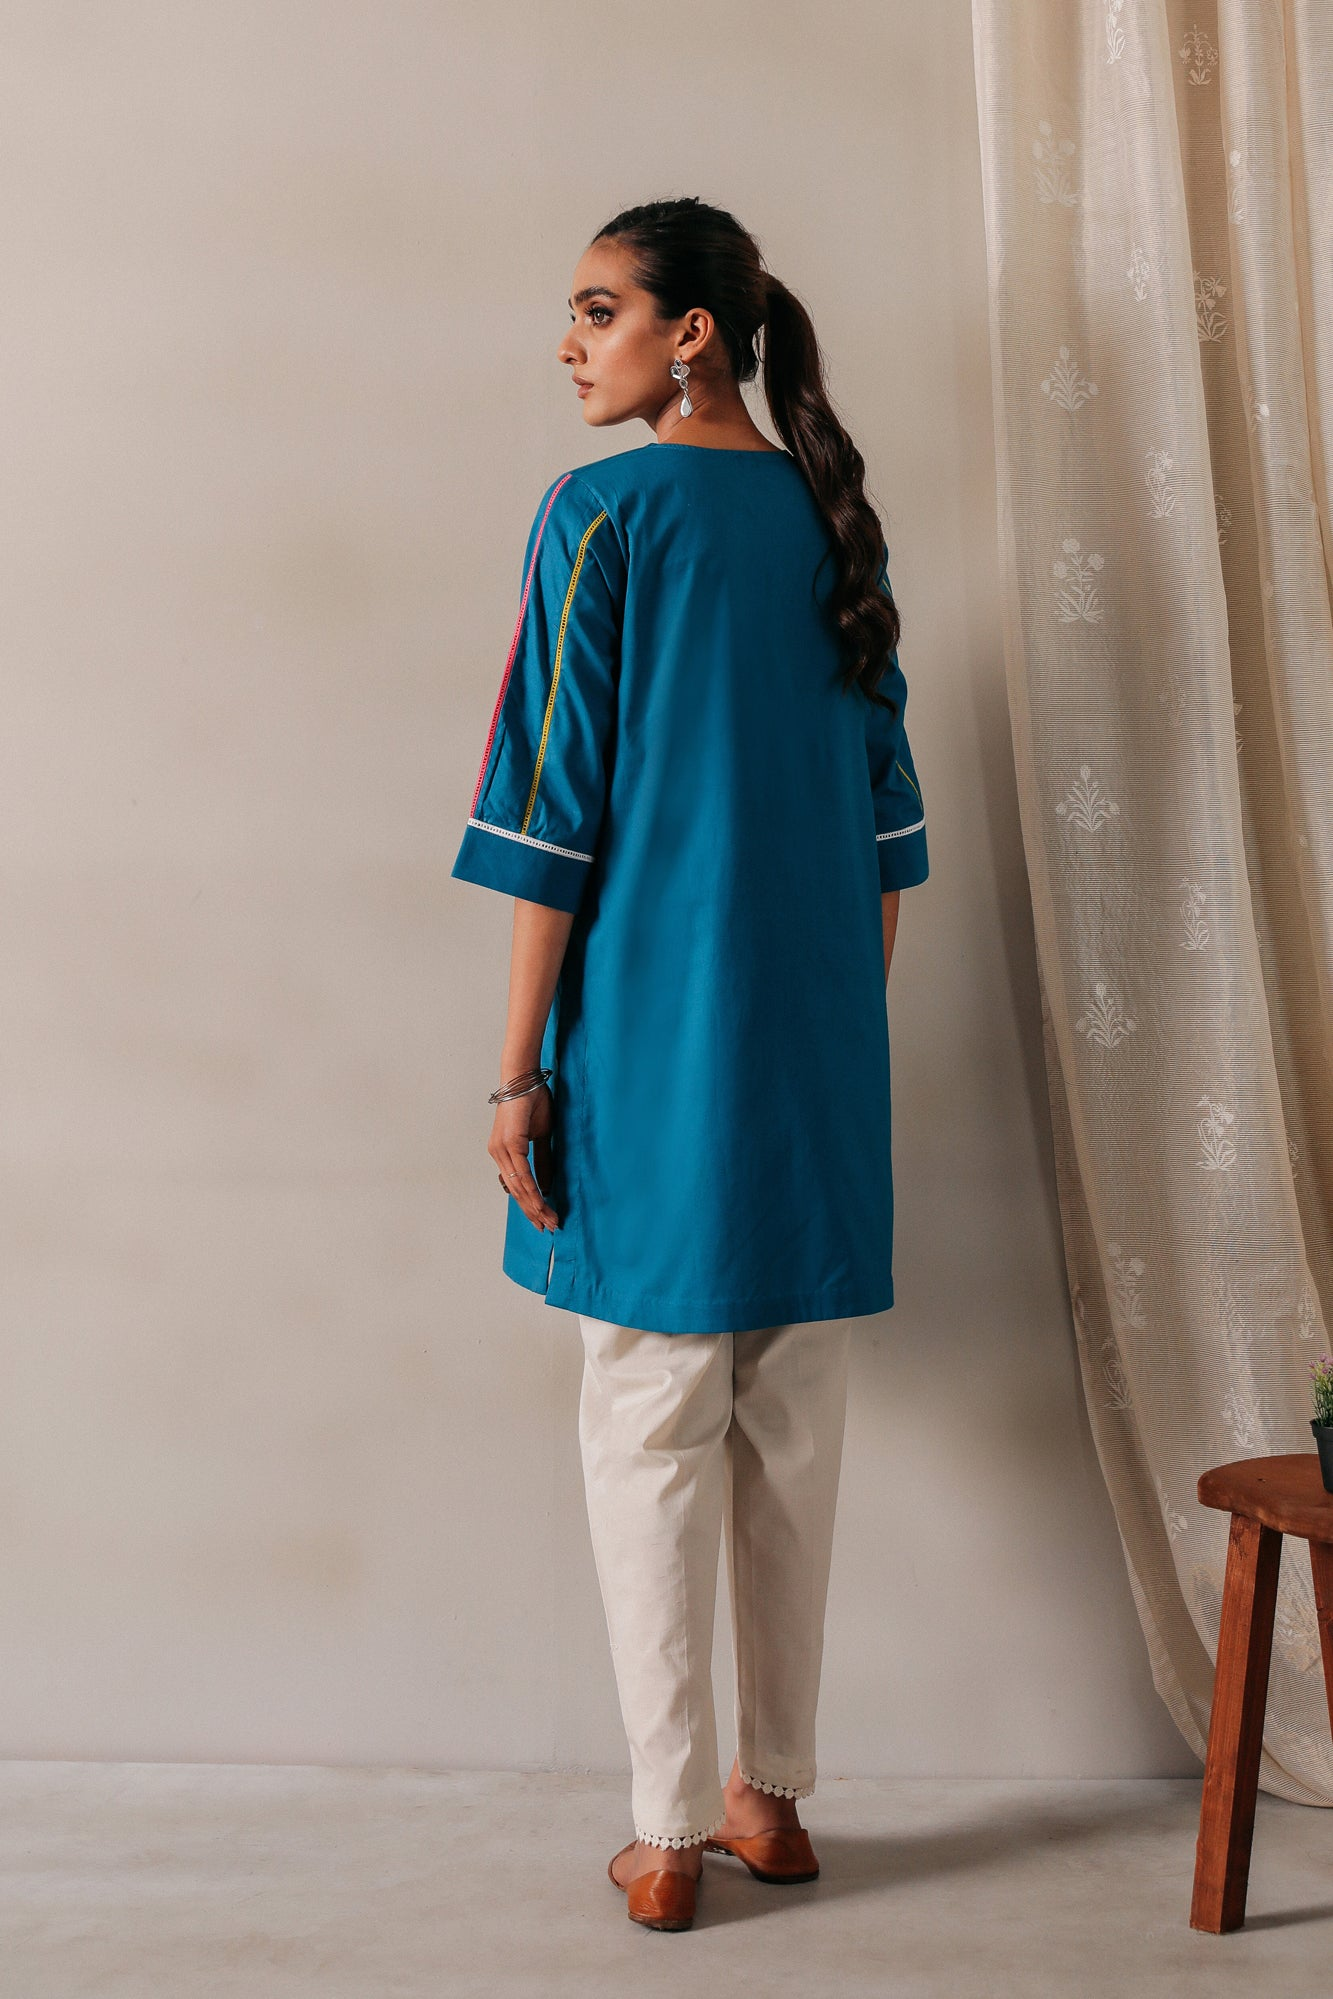 SOLID SHIRT (WTR111342) - Ethnic by Outfitters